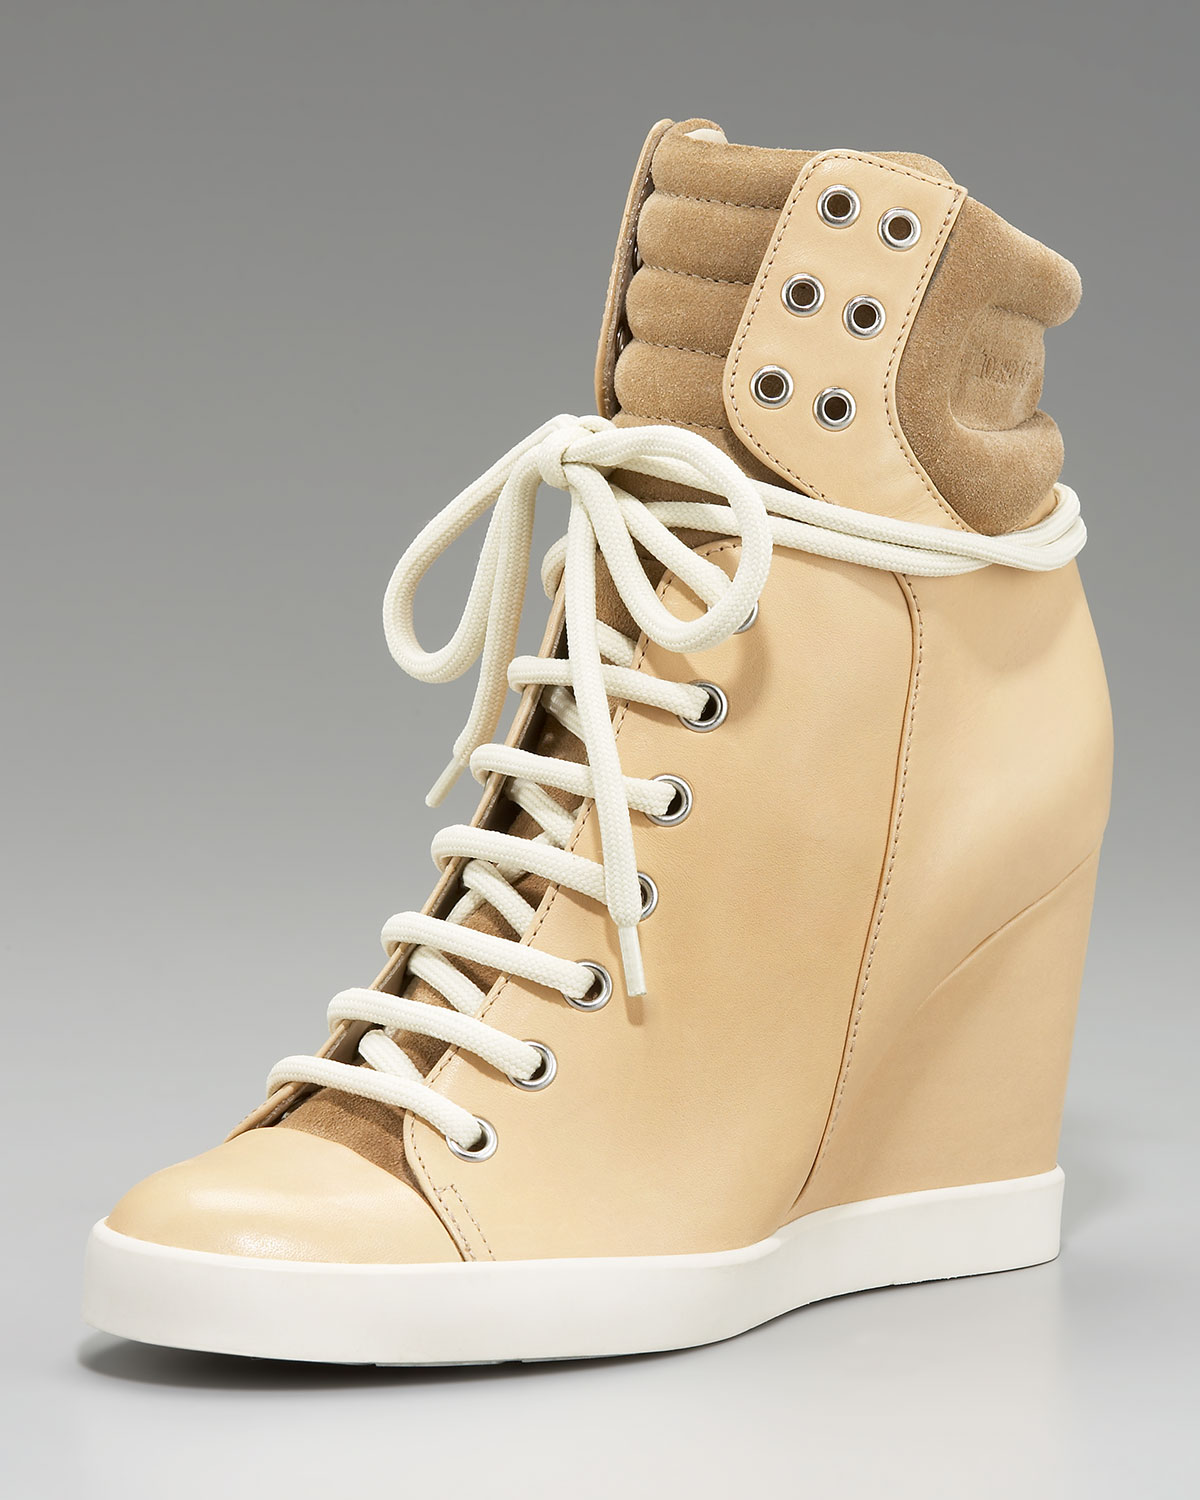 lyst see by chlo high top wedge sneaker in natural. Black Bedroom Furniture Sets. Home Design Ideas